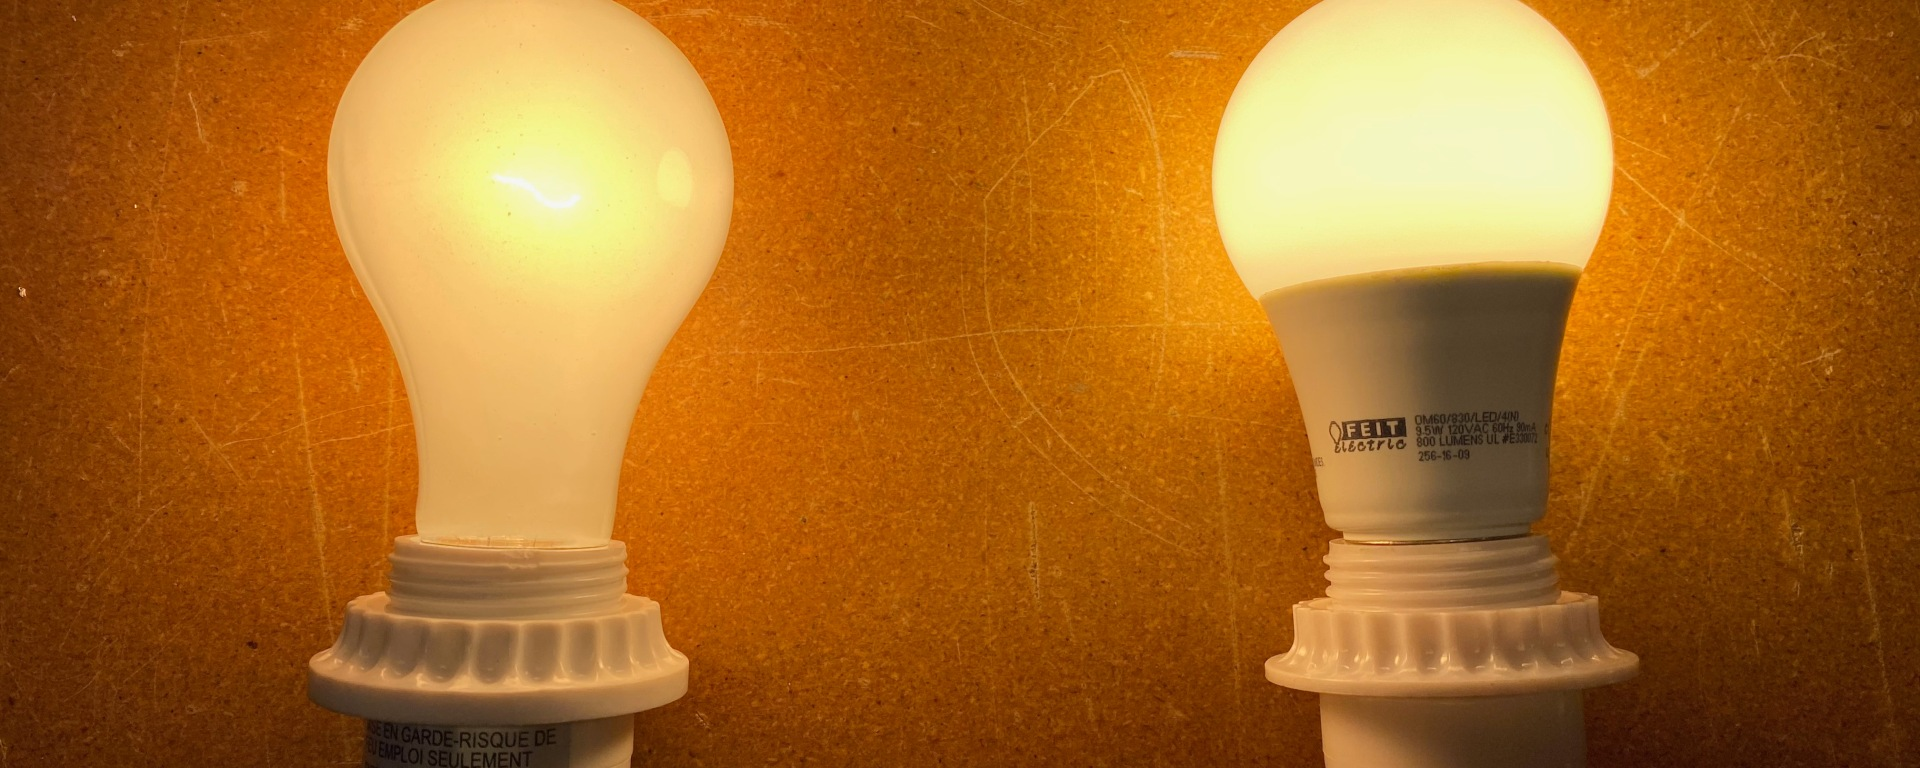 Comparing incandescent and LED